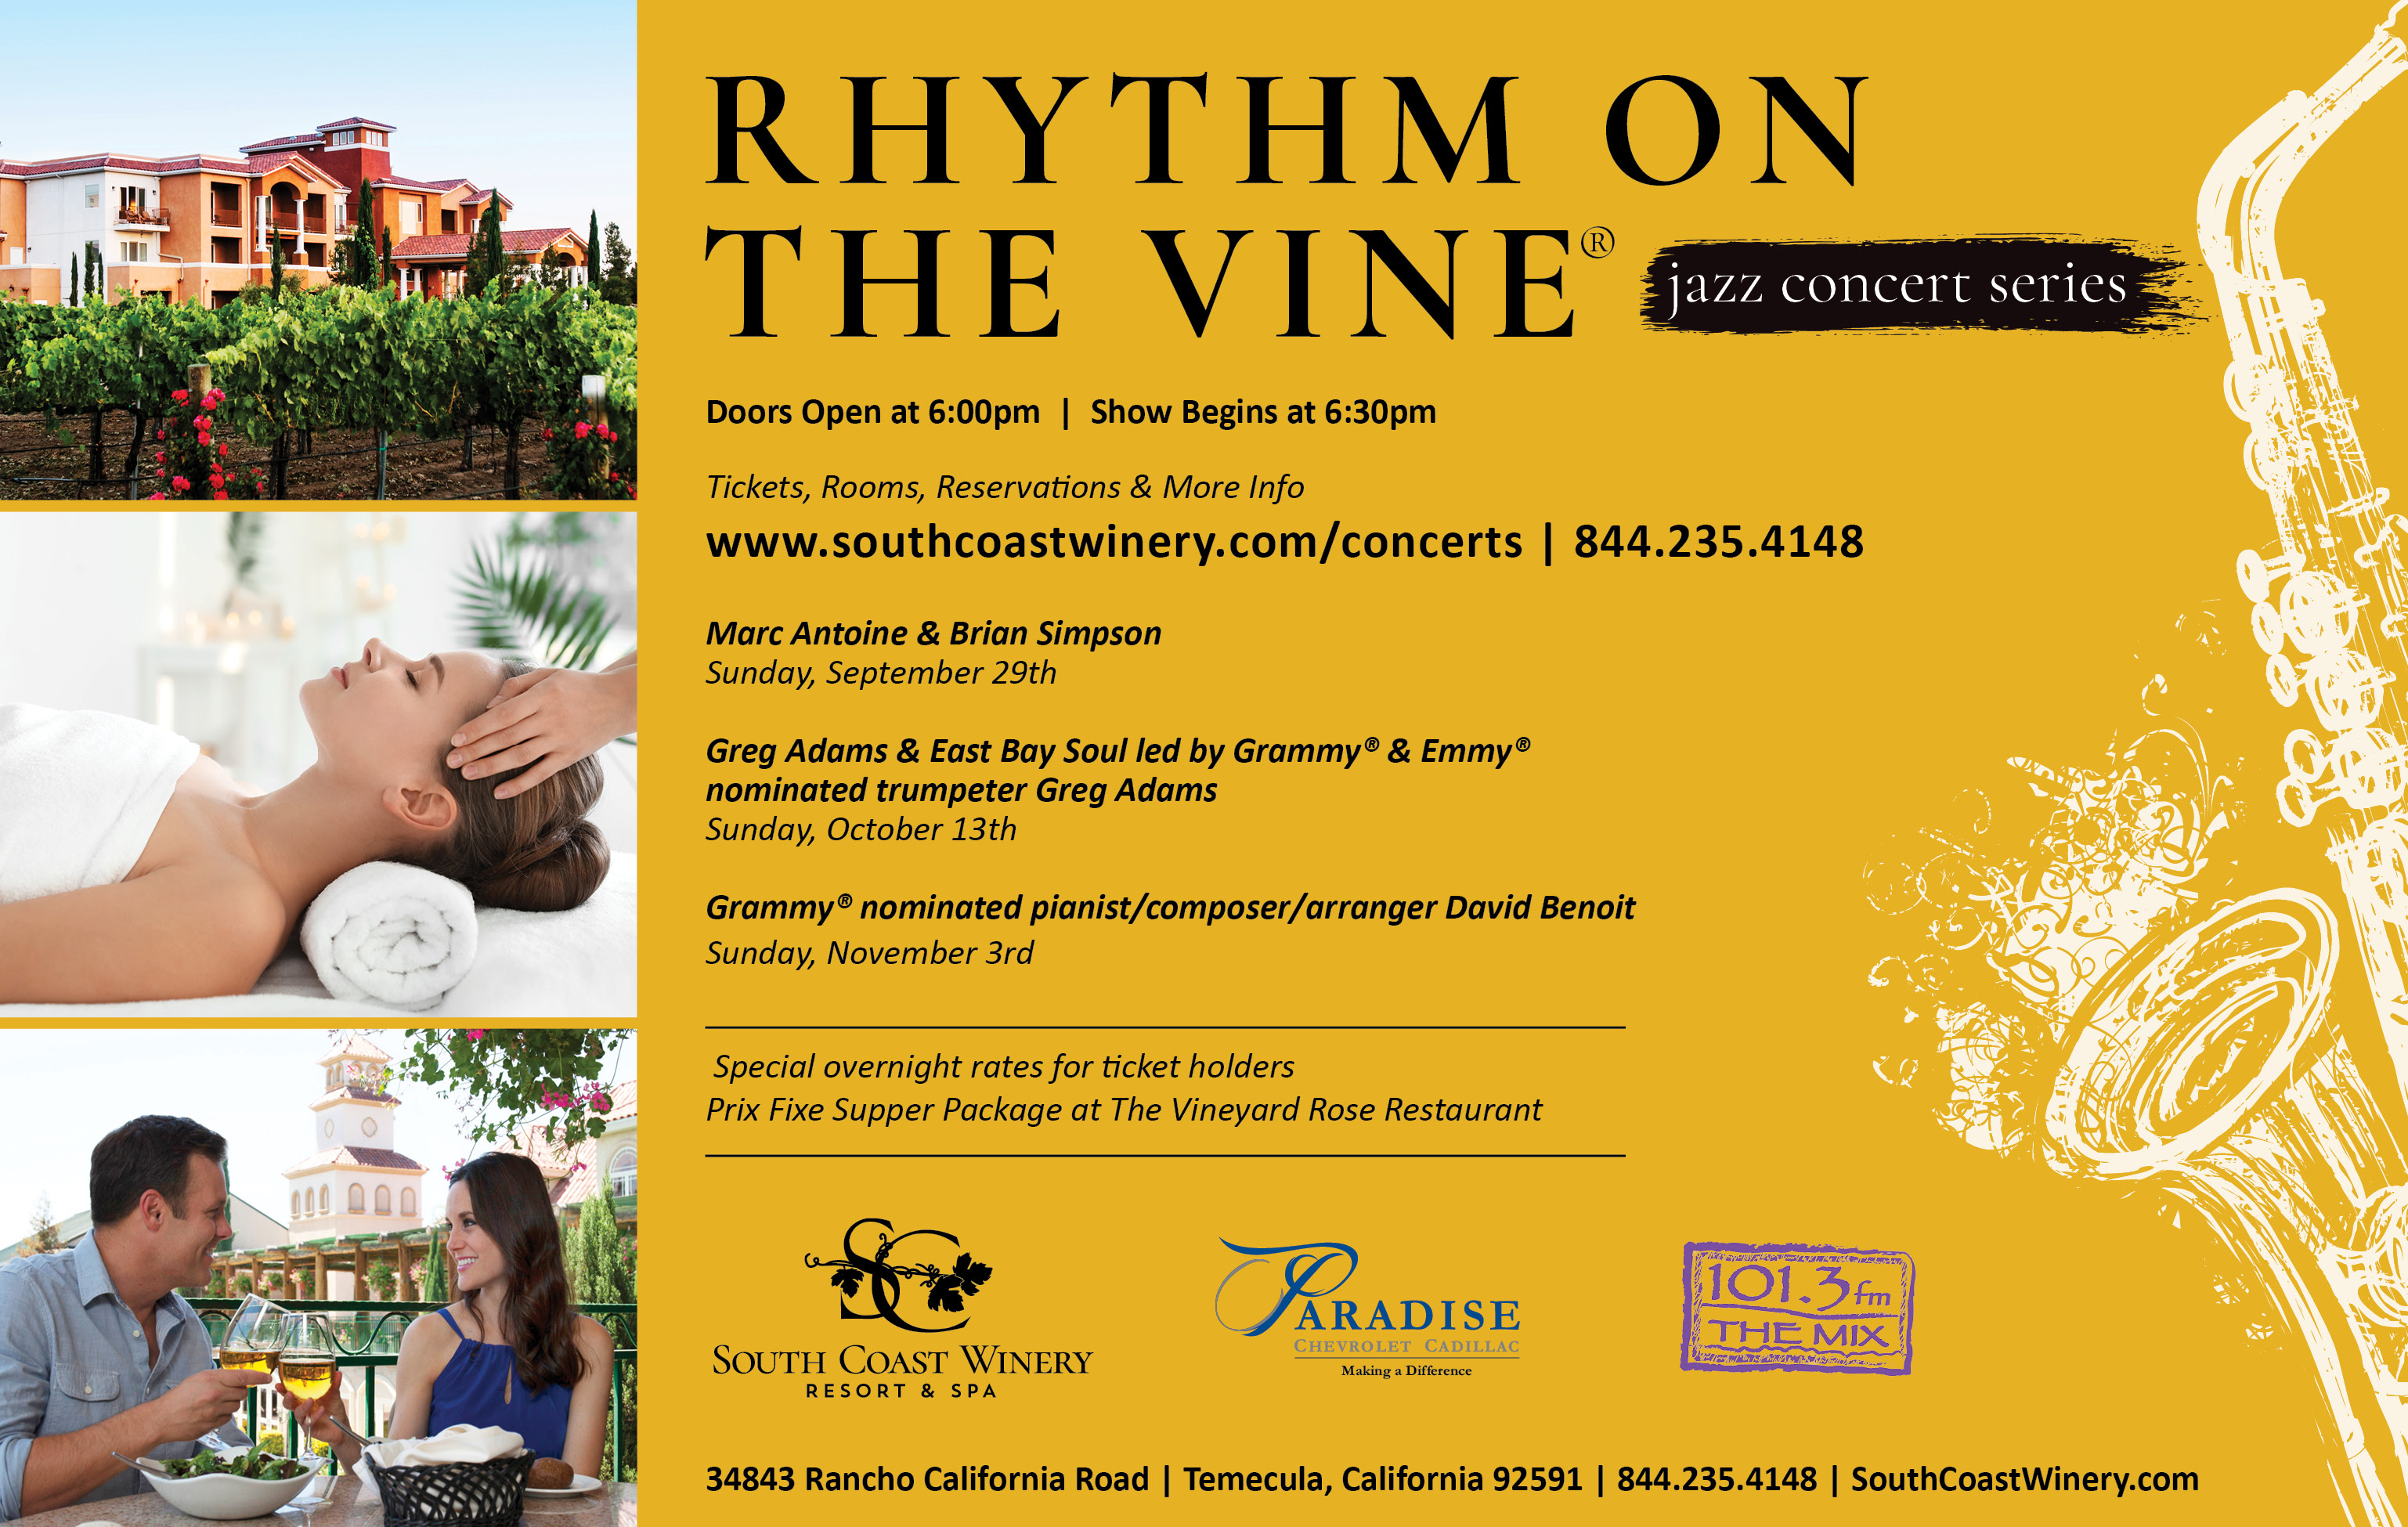 Rythym on the Vine - Concert Series @ South Coast Winery